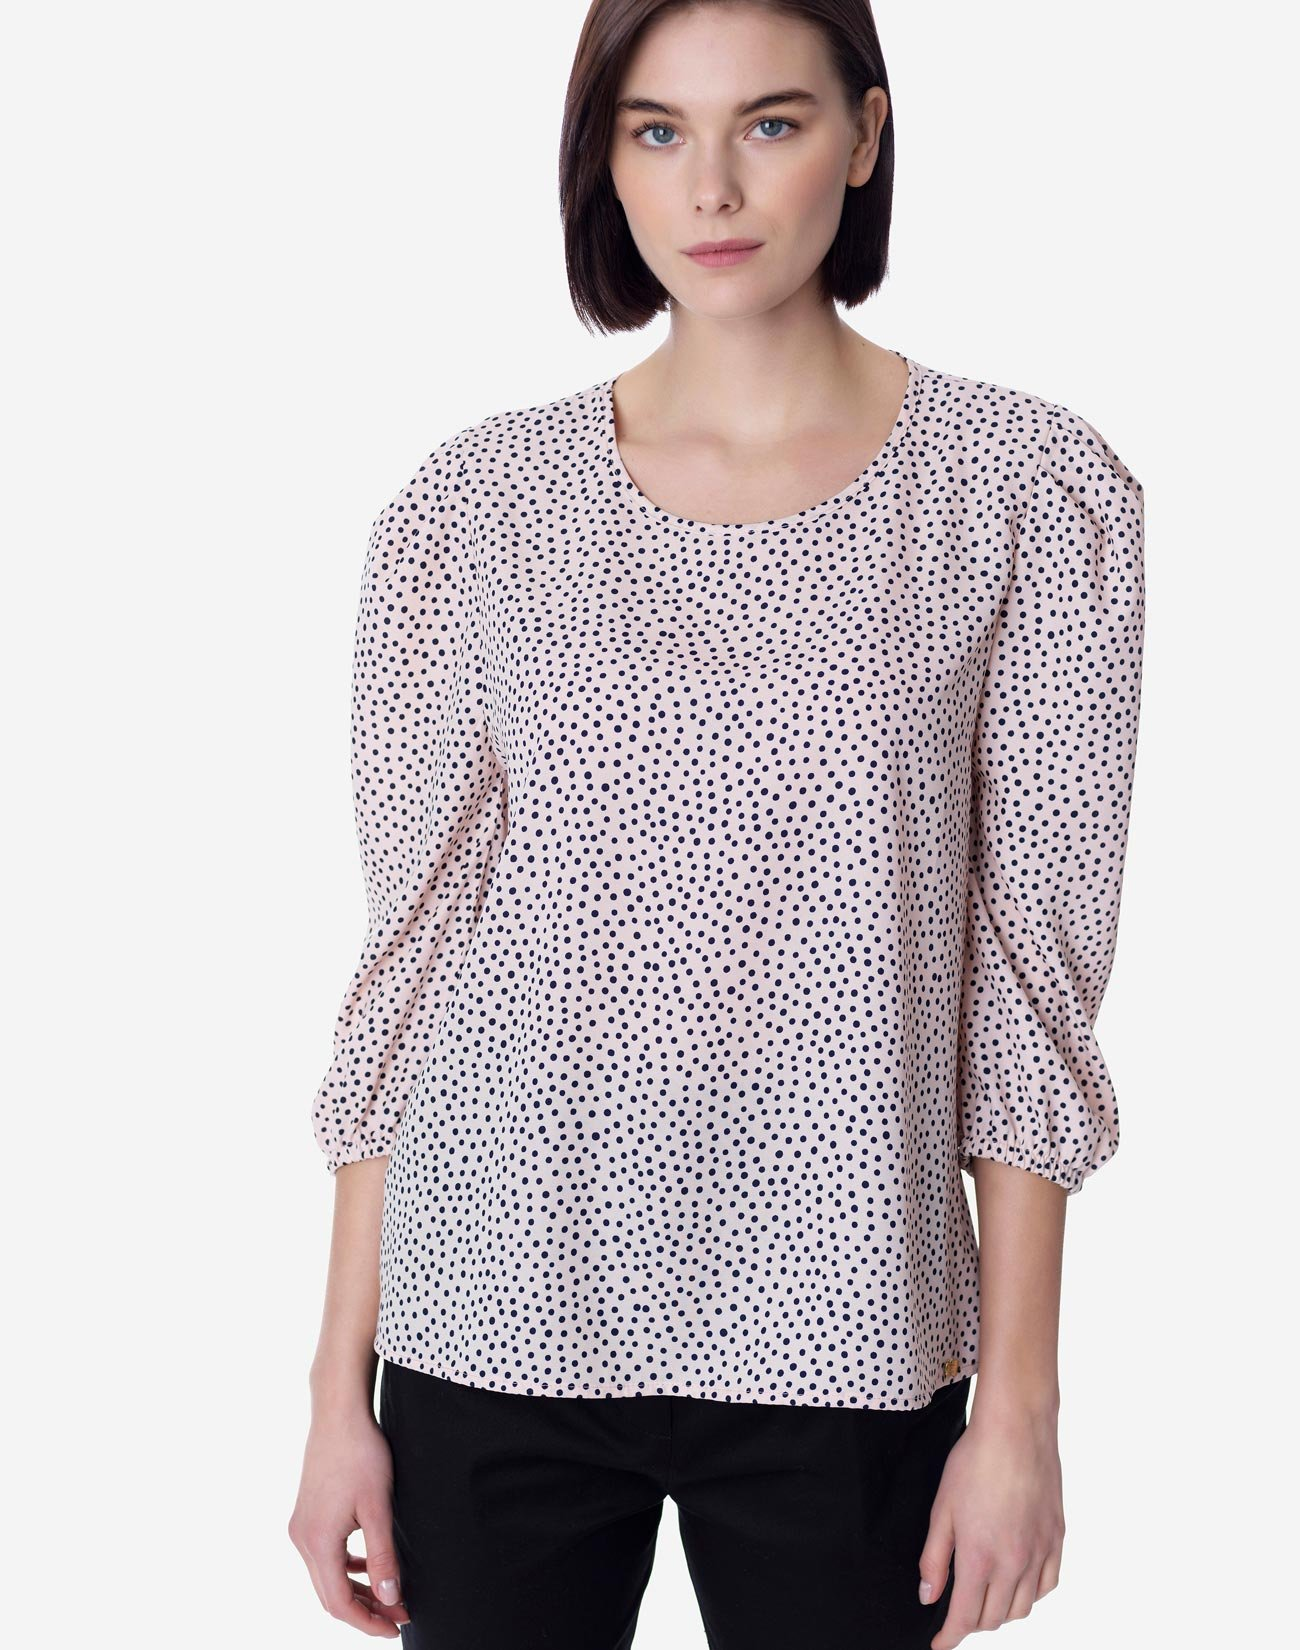 Polka dot blouse with bow